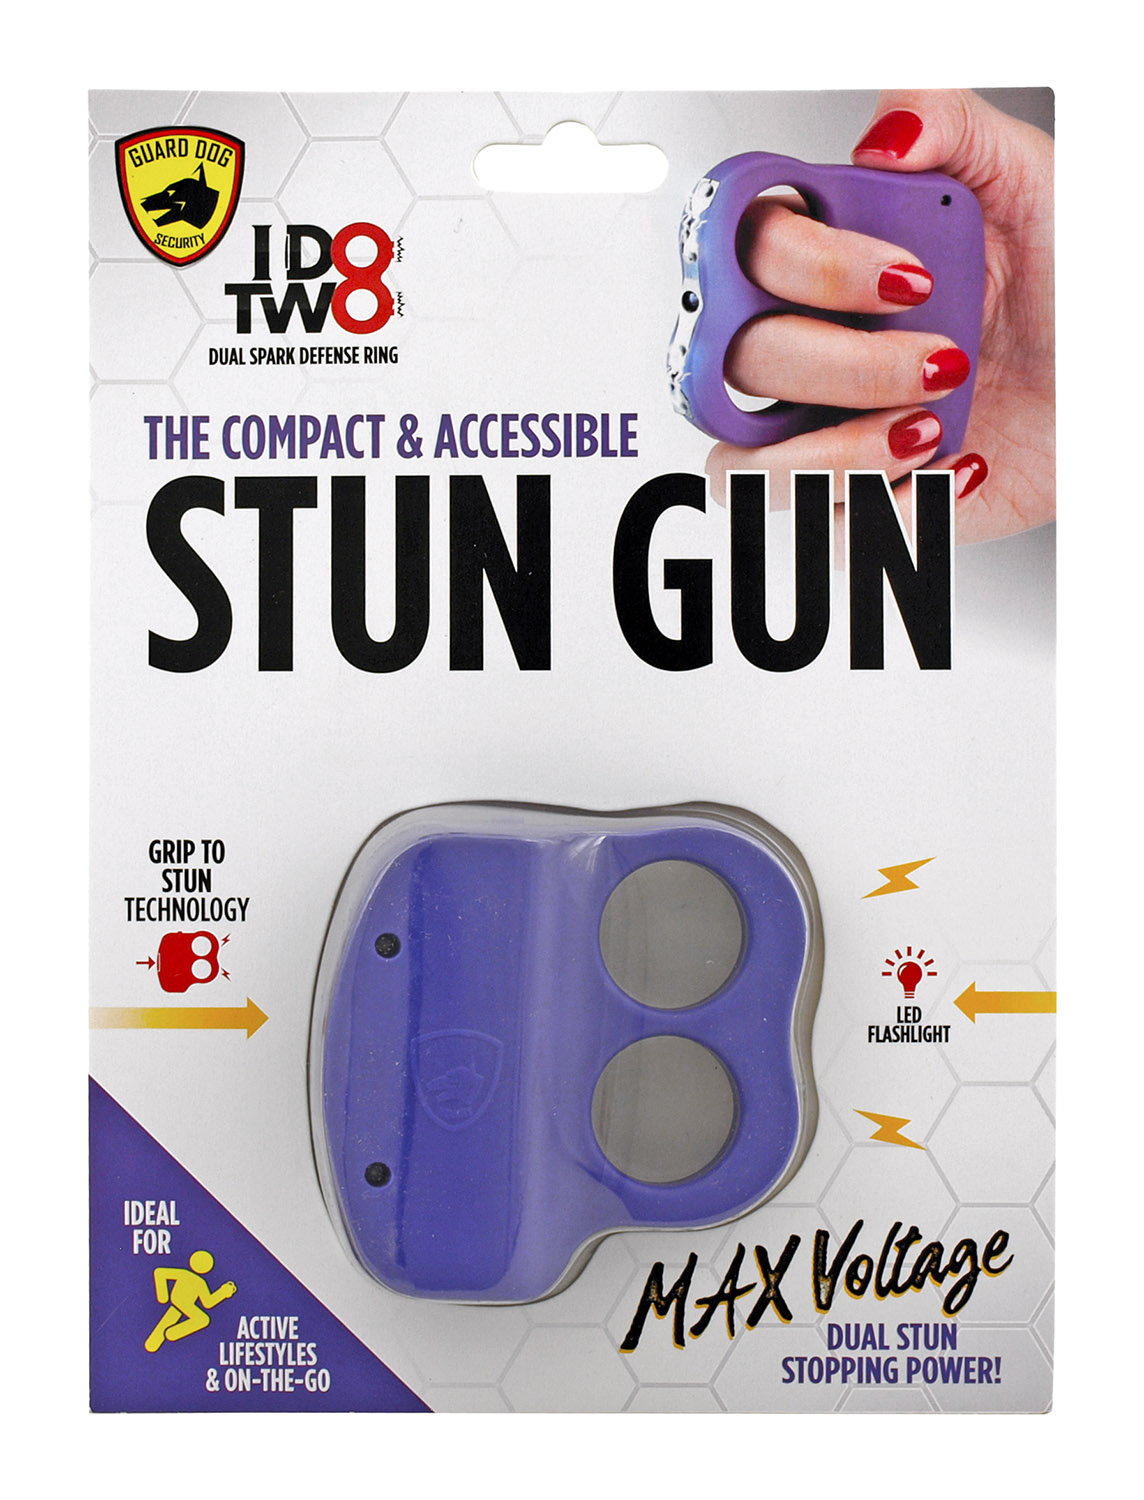 Guard Dog Security I Do Two Dual Grip Stun Gun Rings - Purple